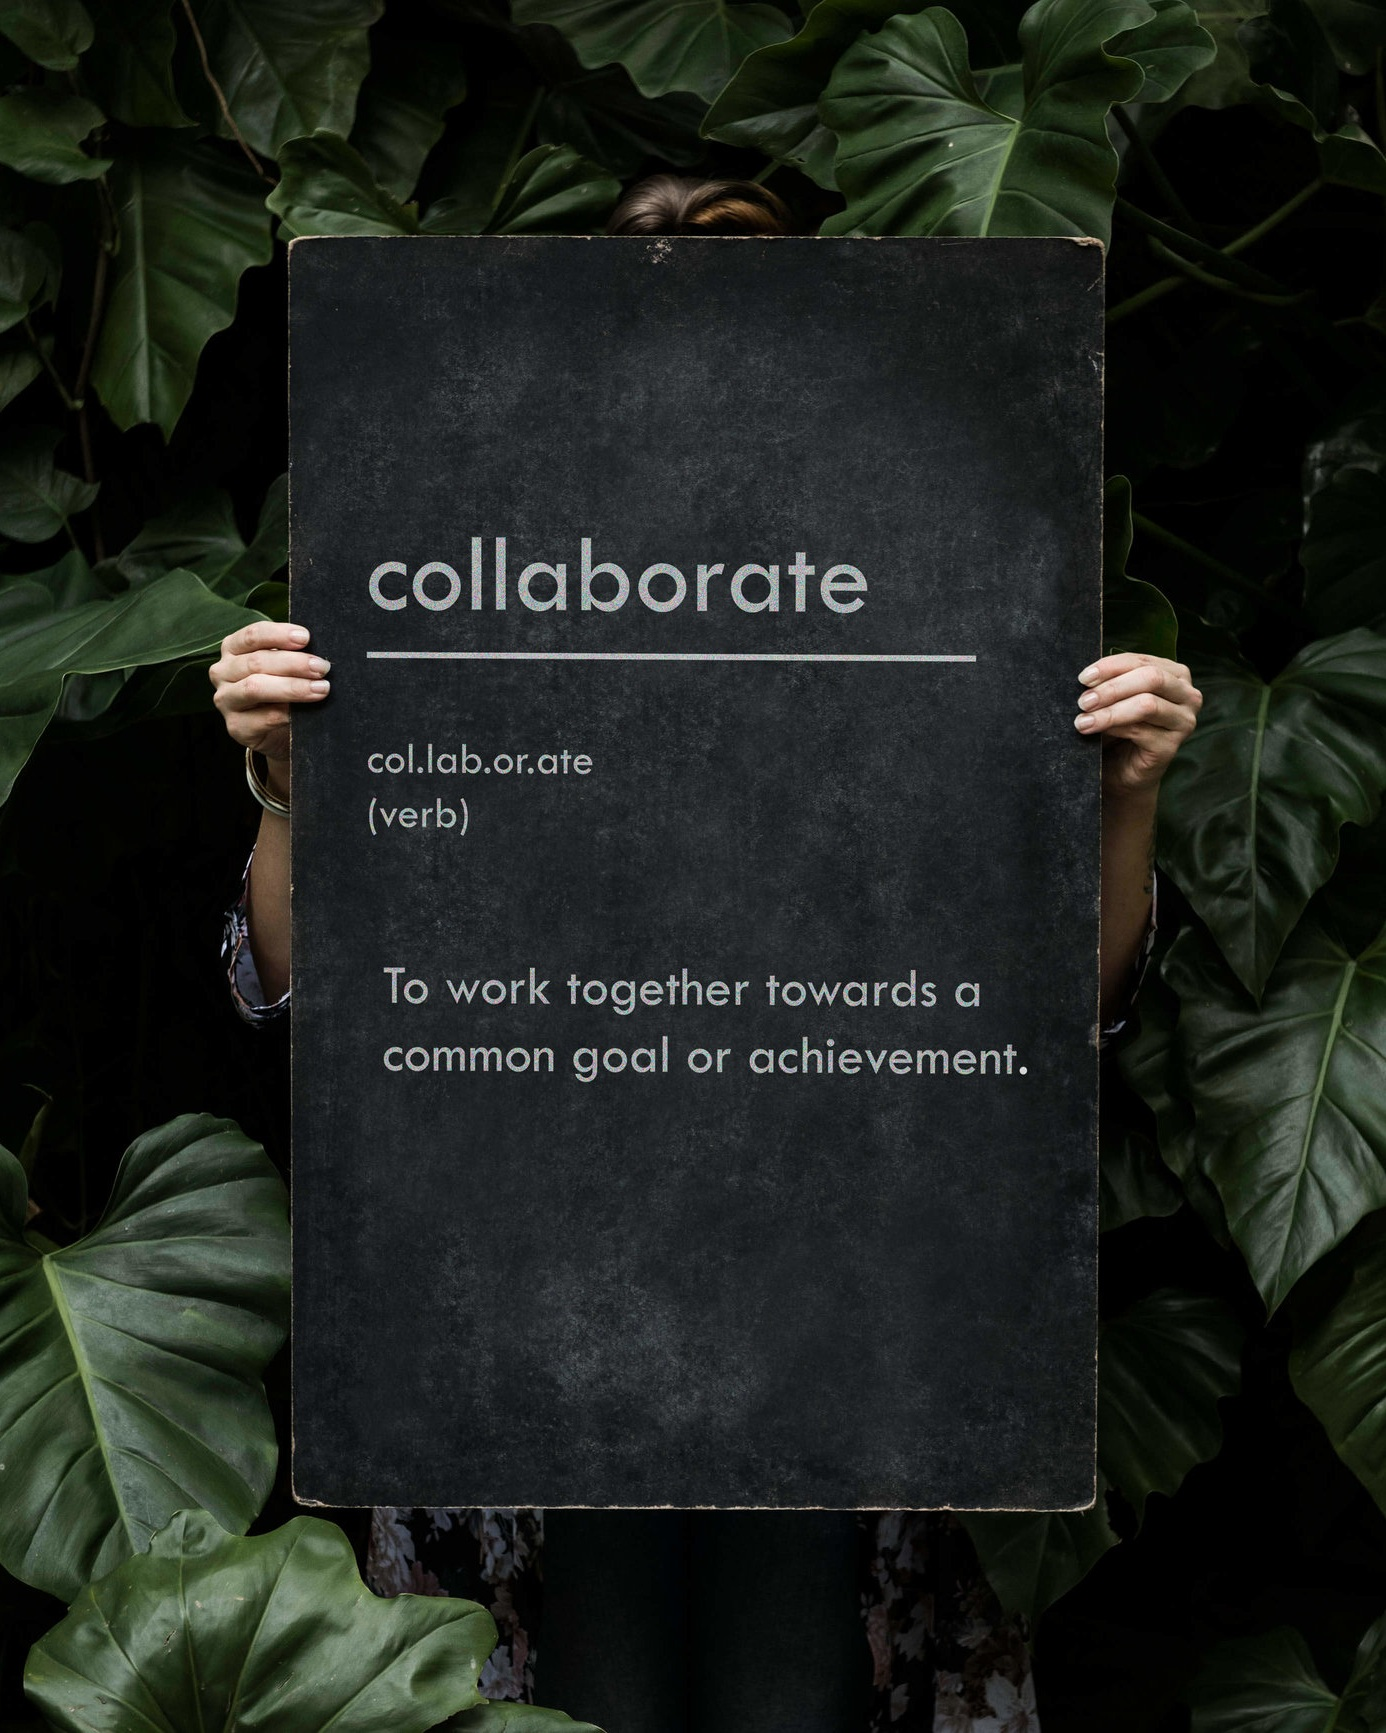 Welcome to the new way to volunteer - Collaborate is a web app that connects people to volunteer opportunities that match their skills and interests. Collaborate makes volunteering fast, fun and addictive.